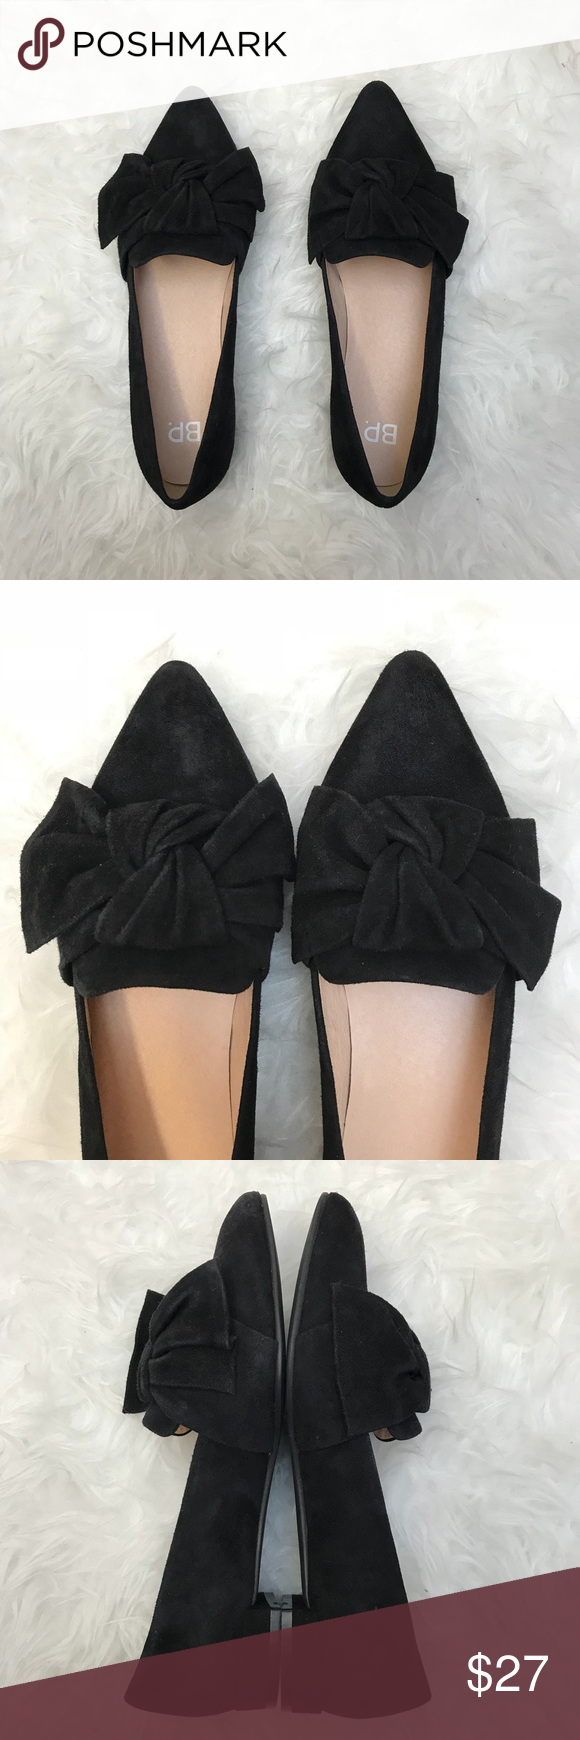 b1b84b95d4b Nordstrom BP Suede Flats Great pre-owned BP Kari Bow pointed toe loafers.  Condition